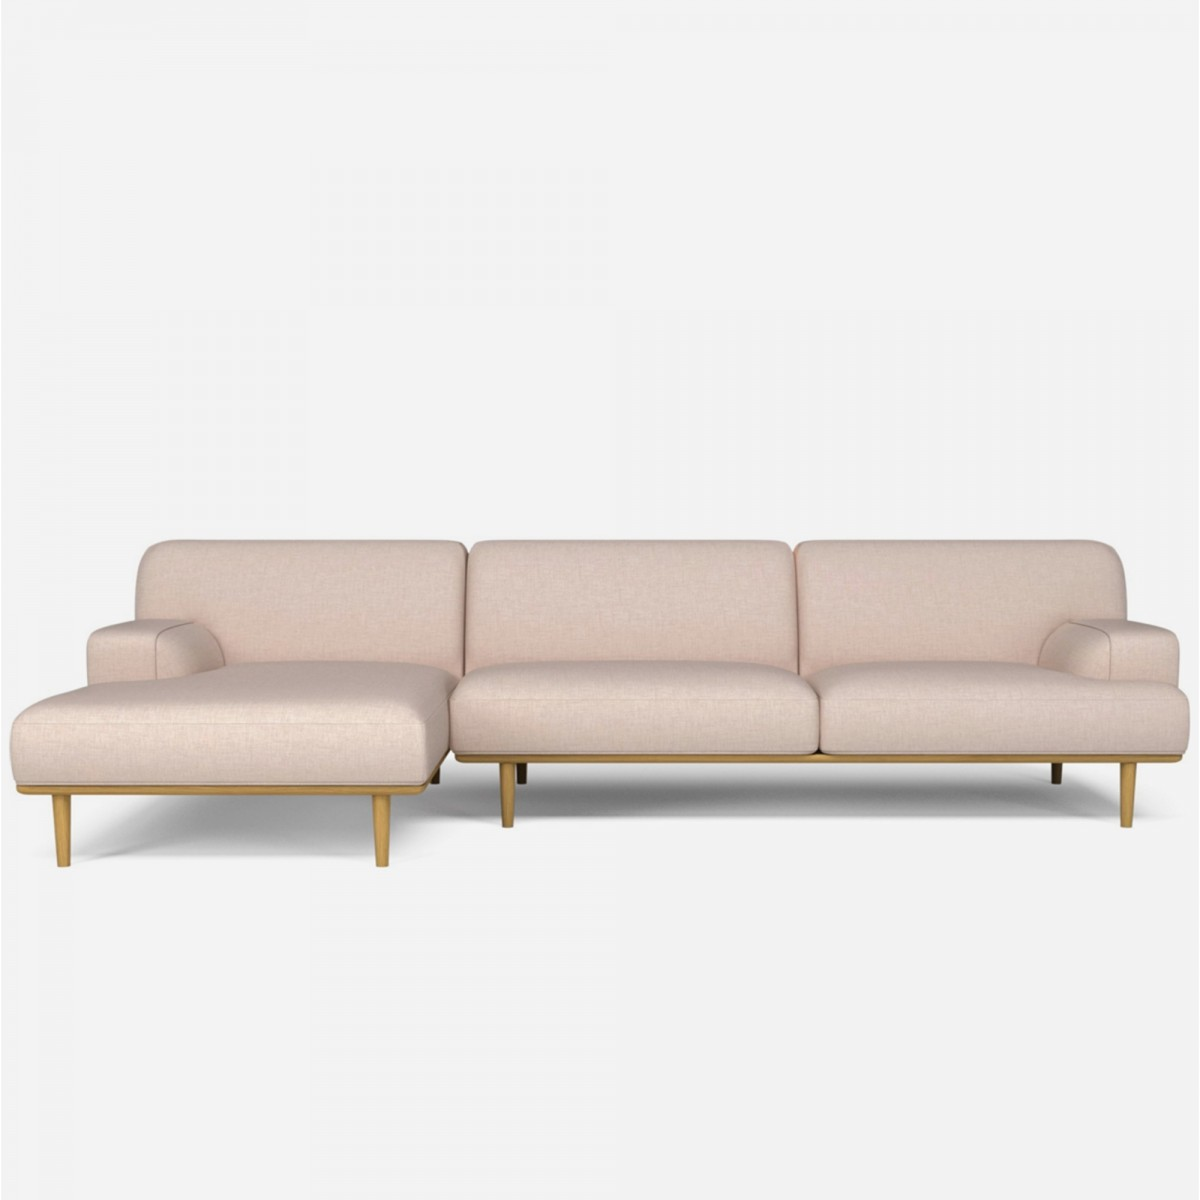 Madison with chaise longue bolia for Sofa chaise longue